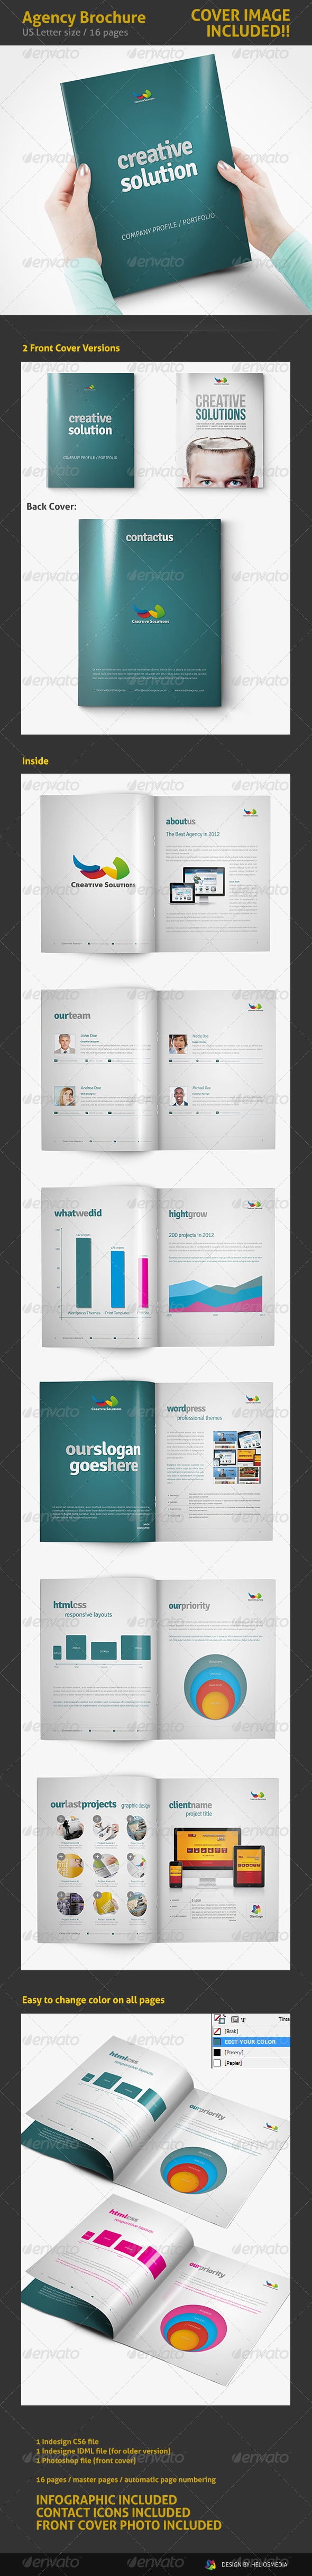 Creative Agency Portfolio / Proposal - Portfolio Brochures